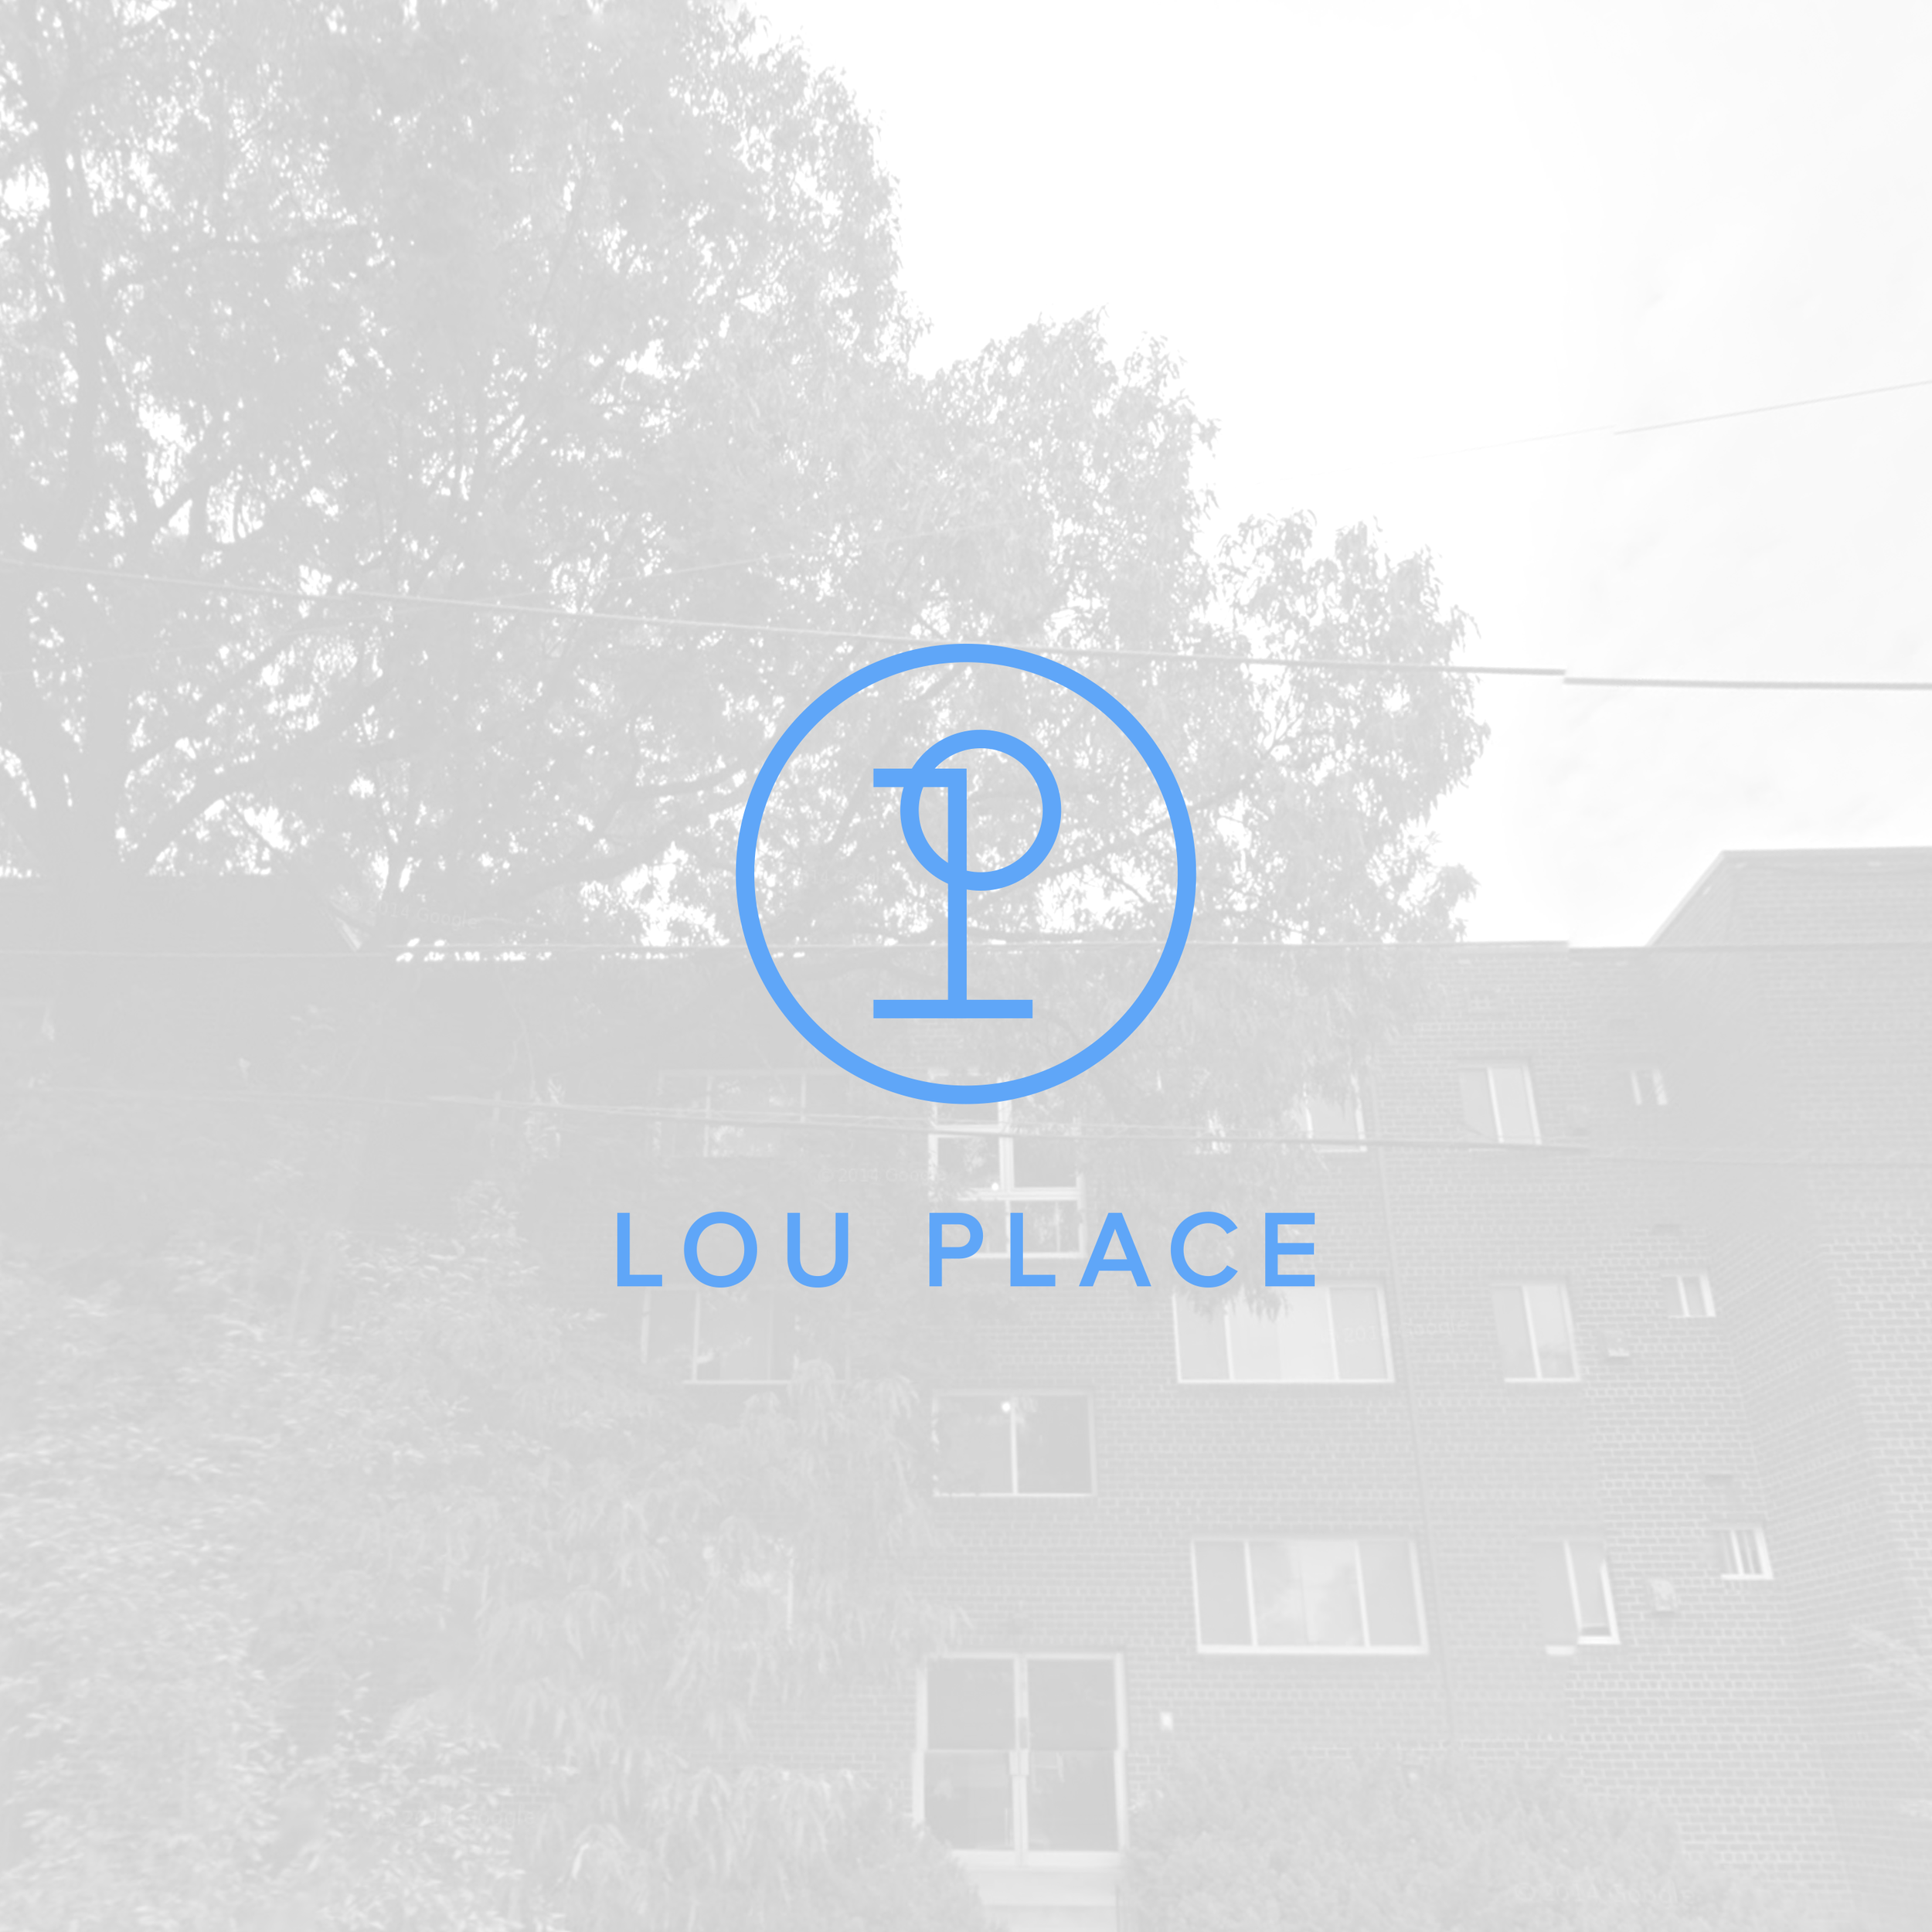 lou-place-project-covers.png